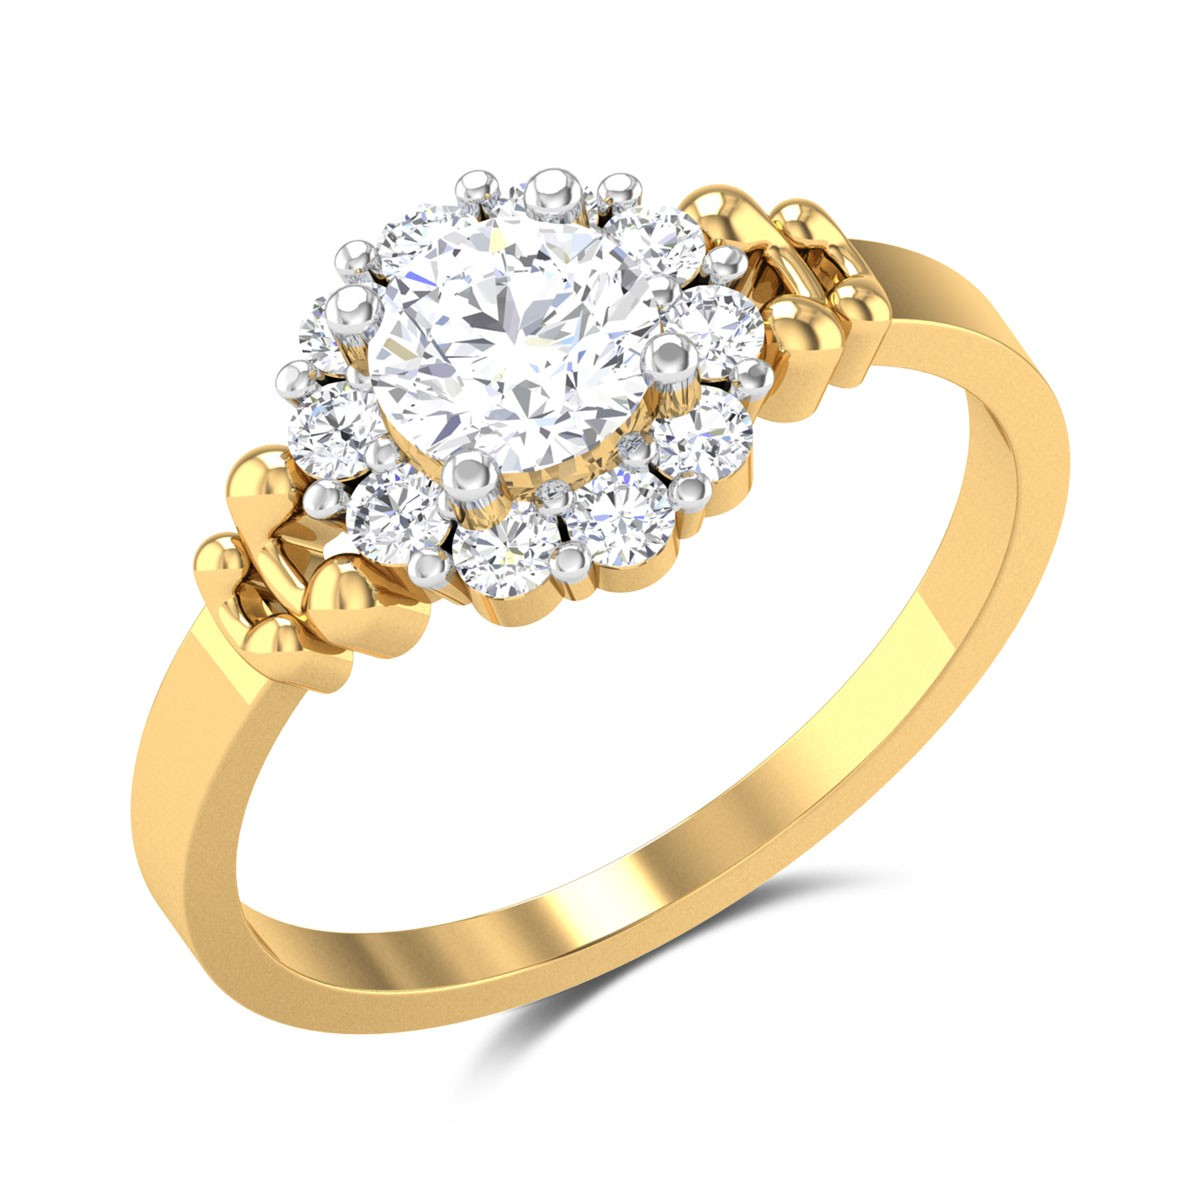 Enoch Floral Solitaire Ring